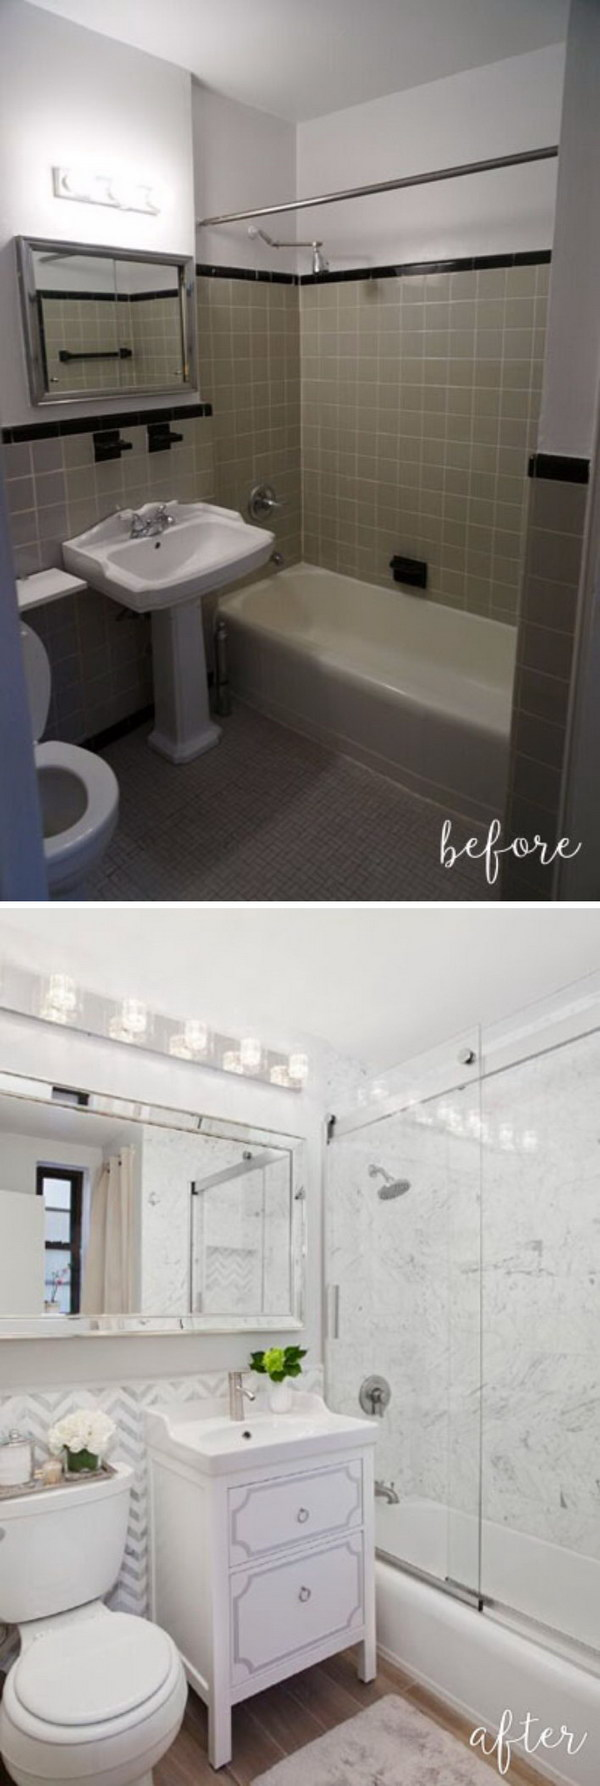 Before and After 20 Amazing Bathroom Makeovers  Noted List